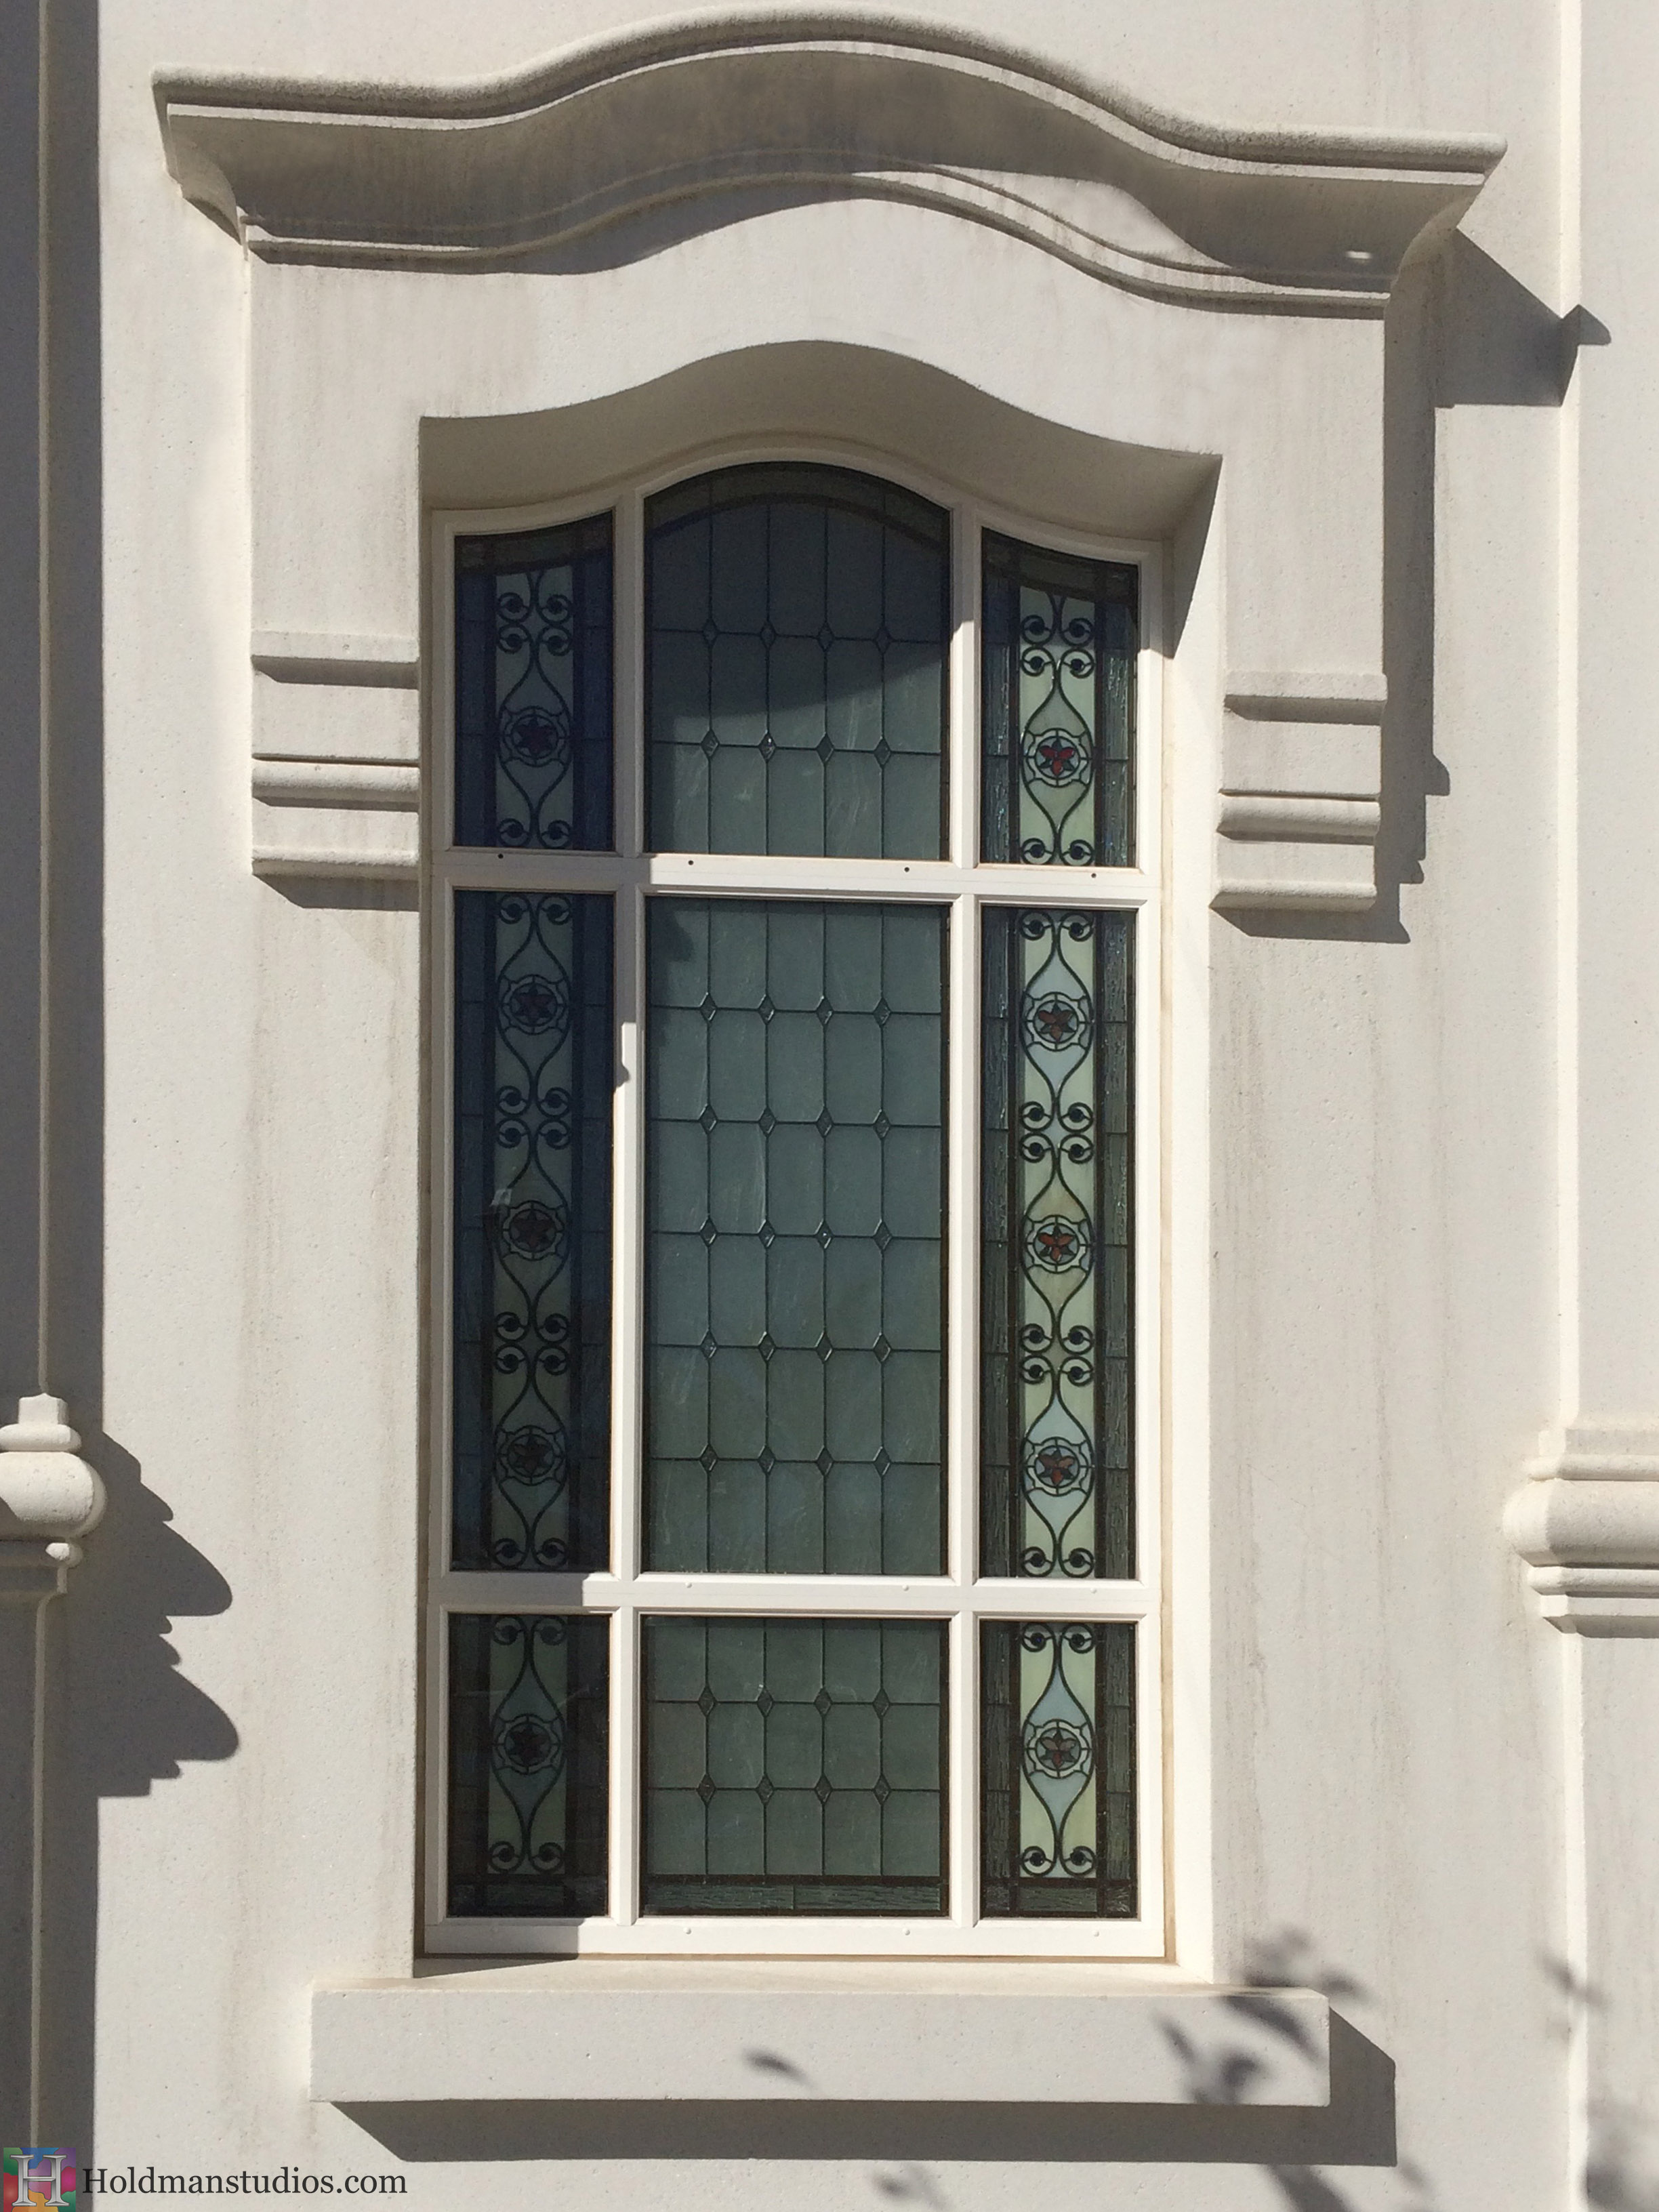 Holdman-Studios-Stained-Etched-Art-Glass-LDS-Mormon-Temple-Tijuana-Mexico-Exterior-Bougainvillea-Bugambilia-Flower-Window.jpg